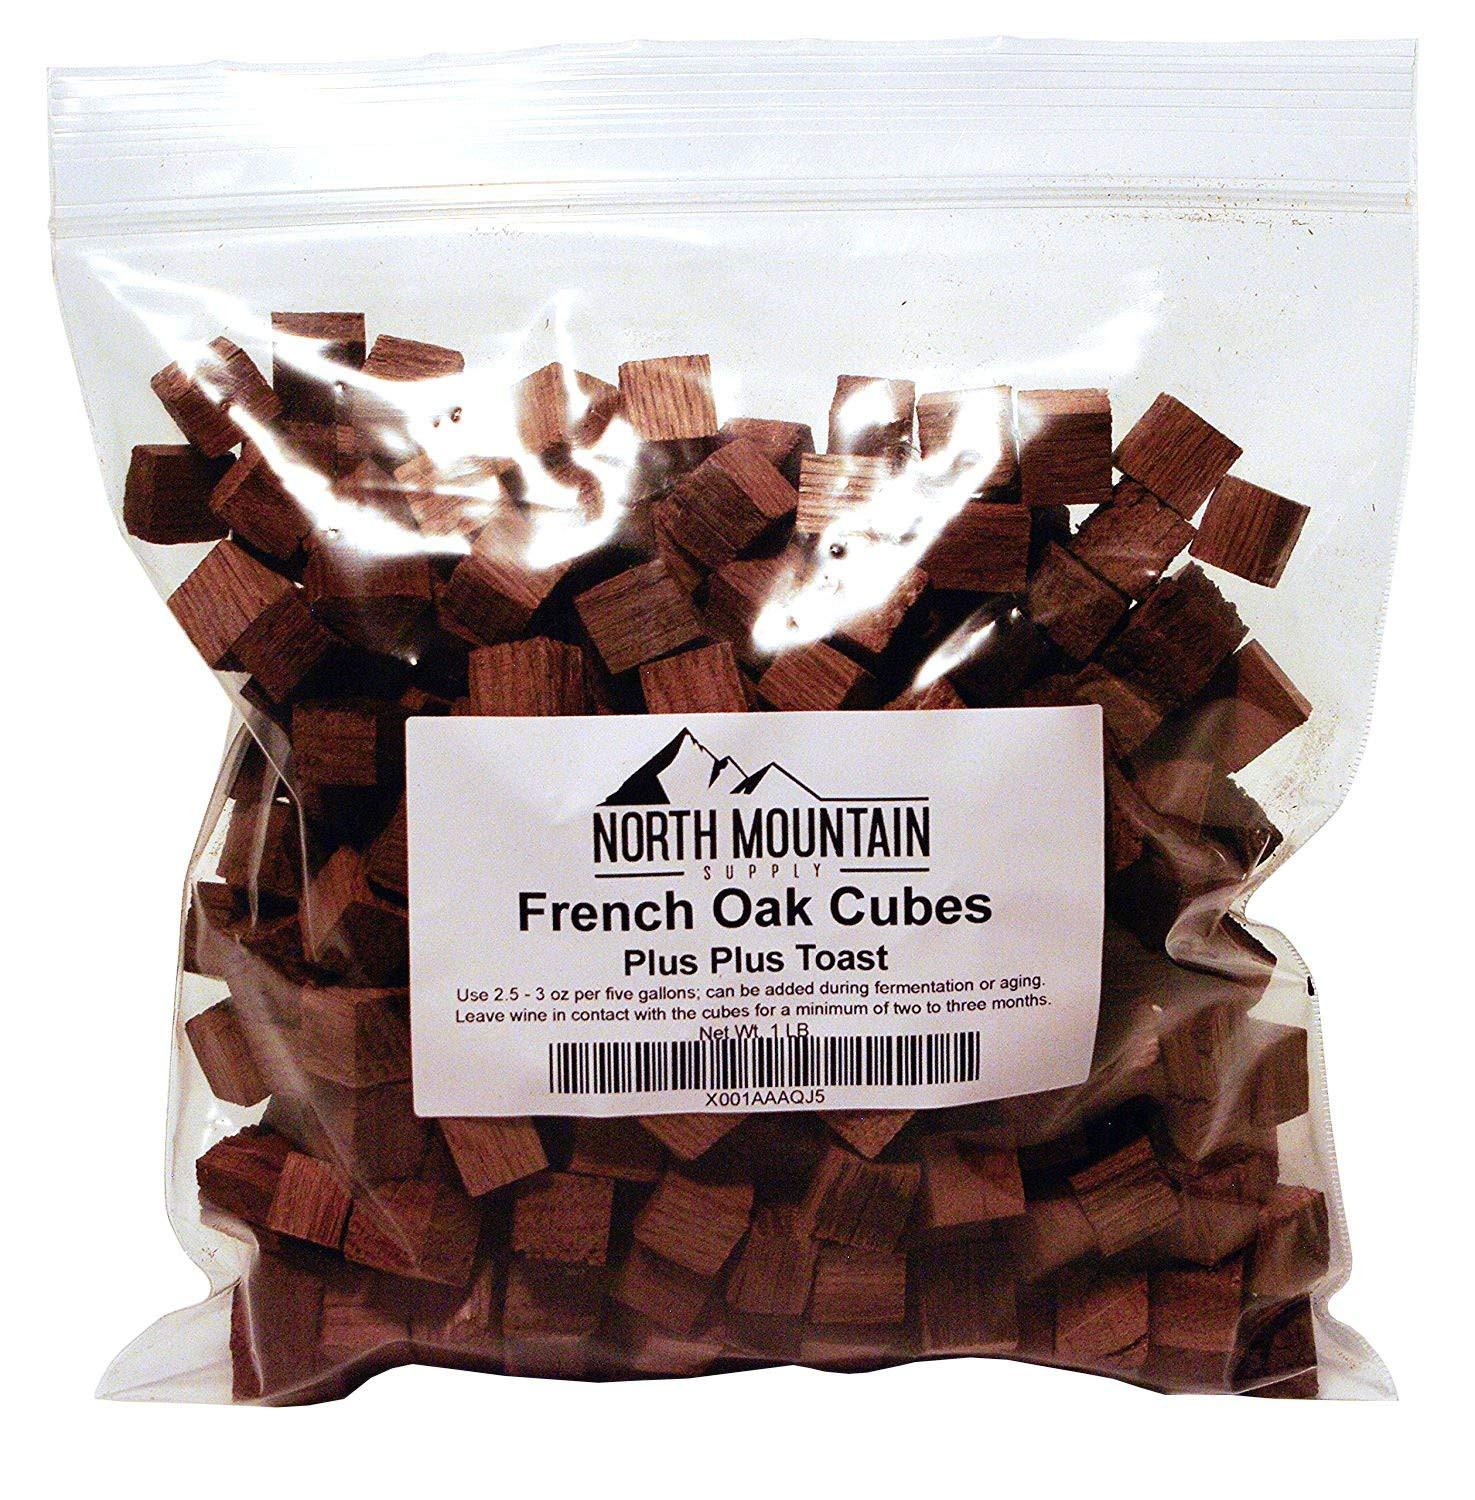 Fruit and Chocolate Basket Delivery Best Of Amazon north Mountain Supply French Oak Cubes Plus Plus toast